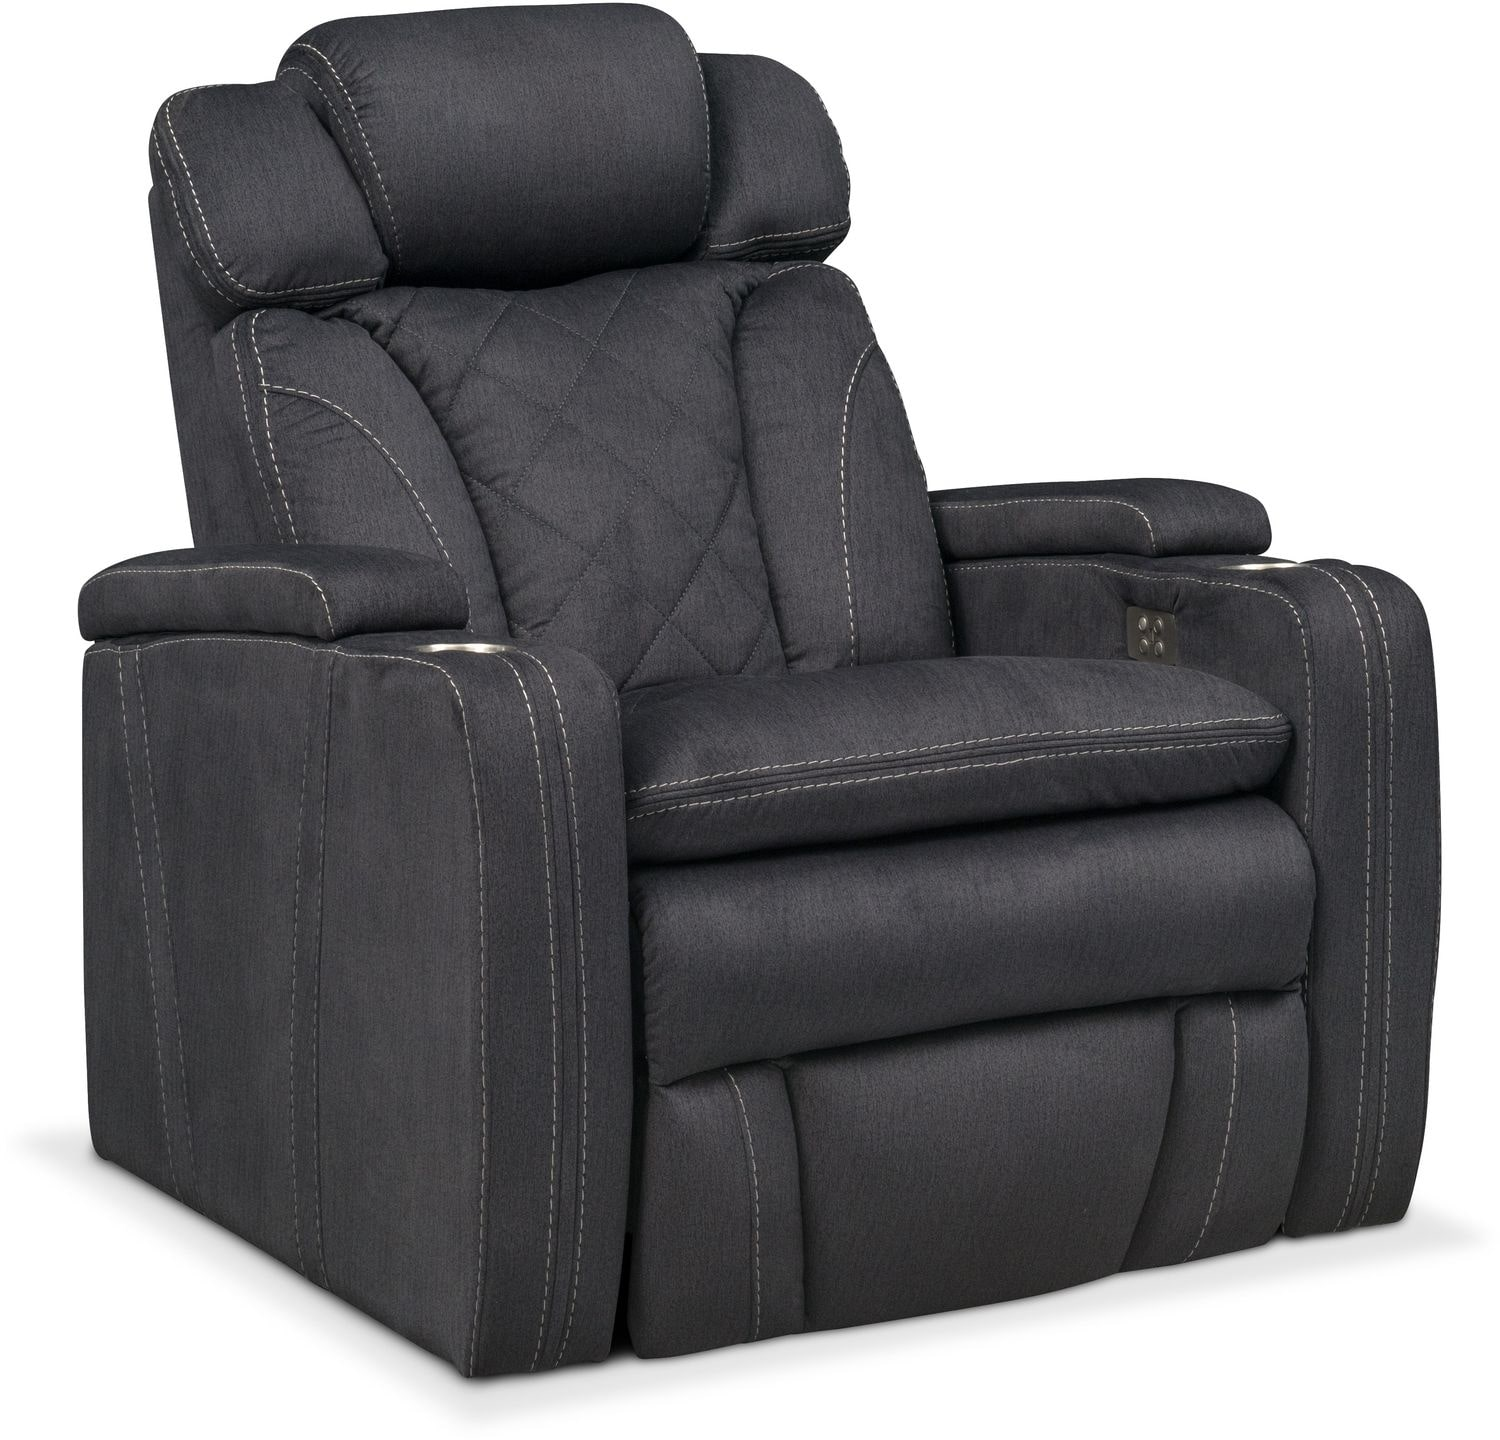 Fiero Power Recliner - Charcoal  sc 1 st  American Signature Furniture : art of care recliner - islam-shia.org